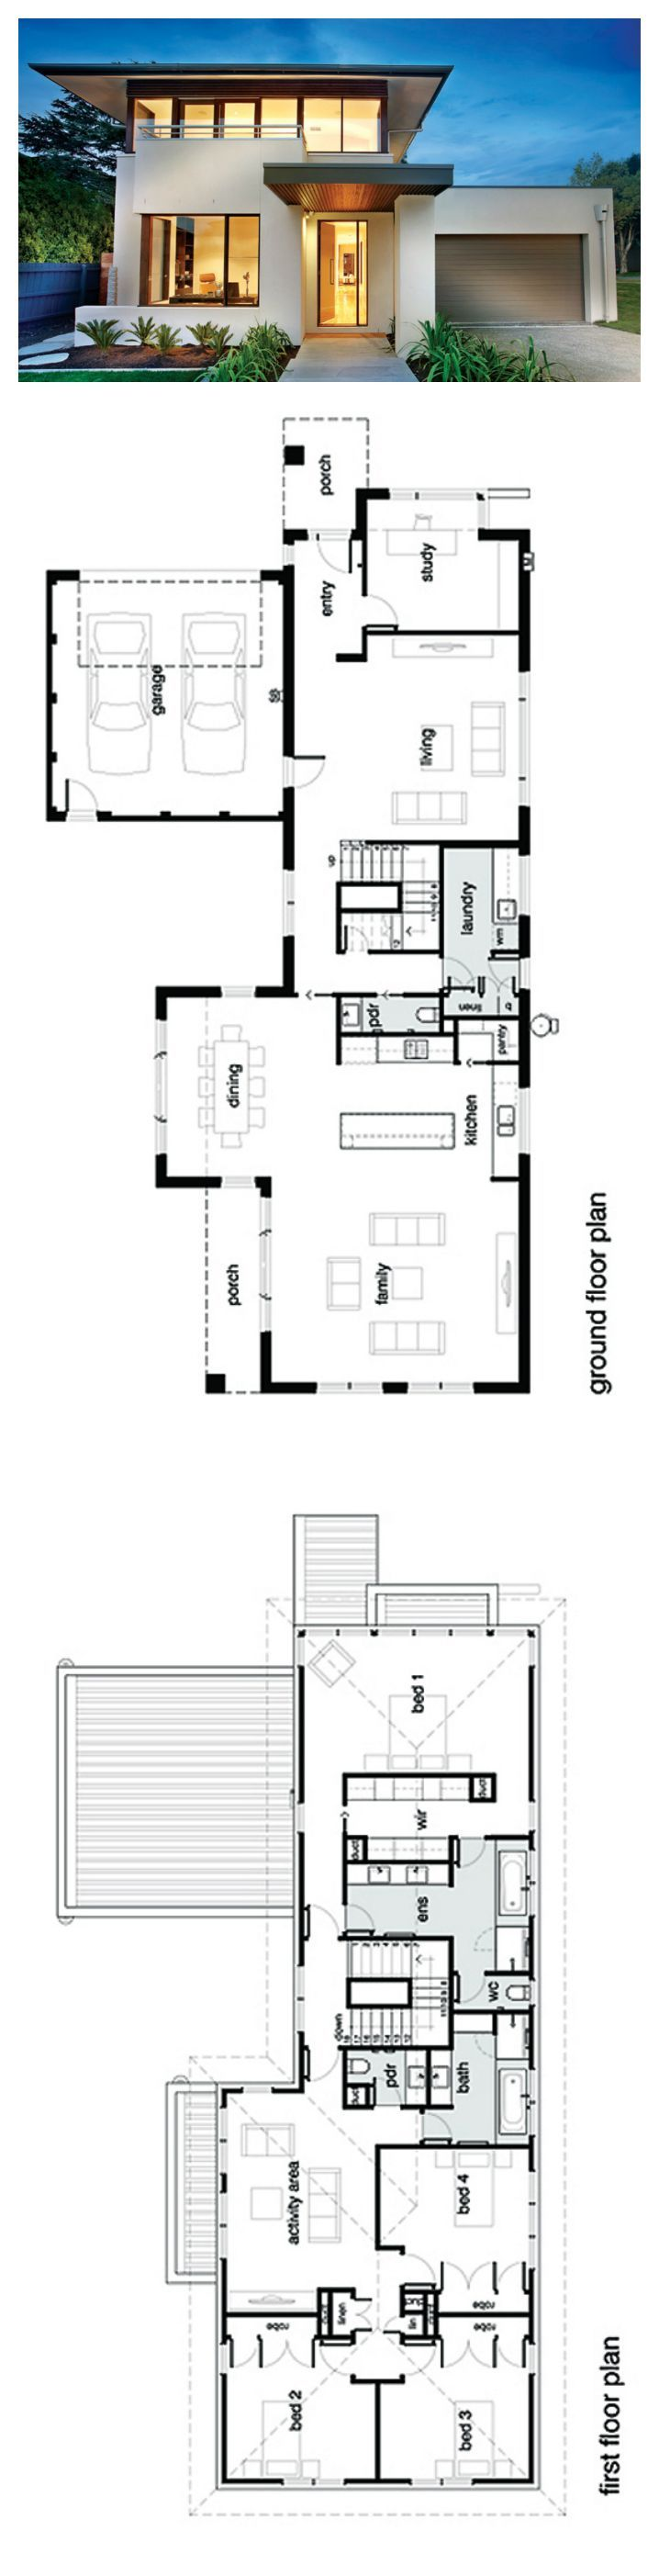 Two Storey House Design With Floor Plan Of Best 25 Modern House Plans Ideas On Pinterest Modern